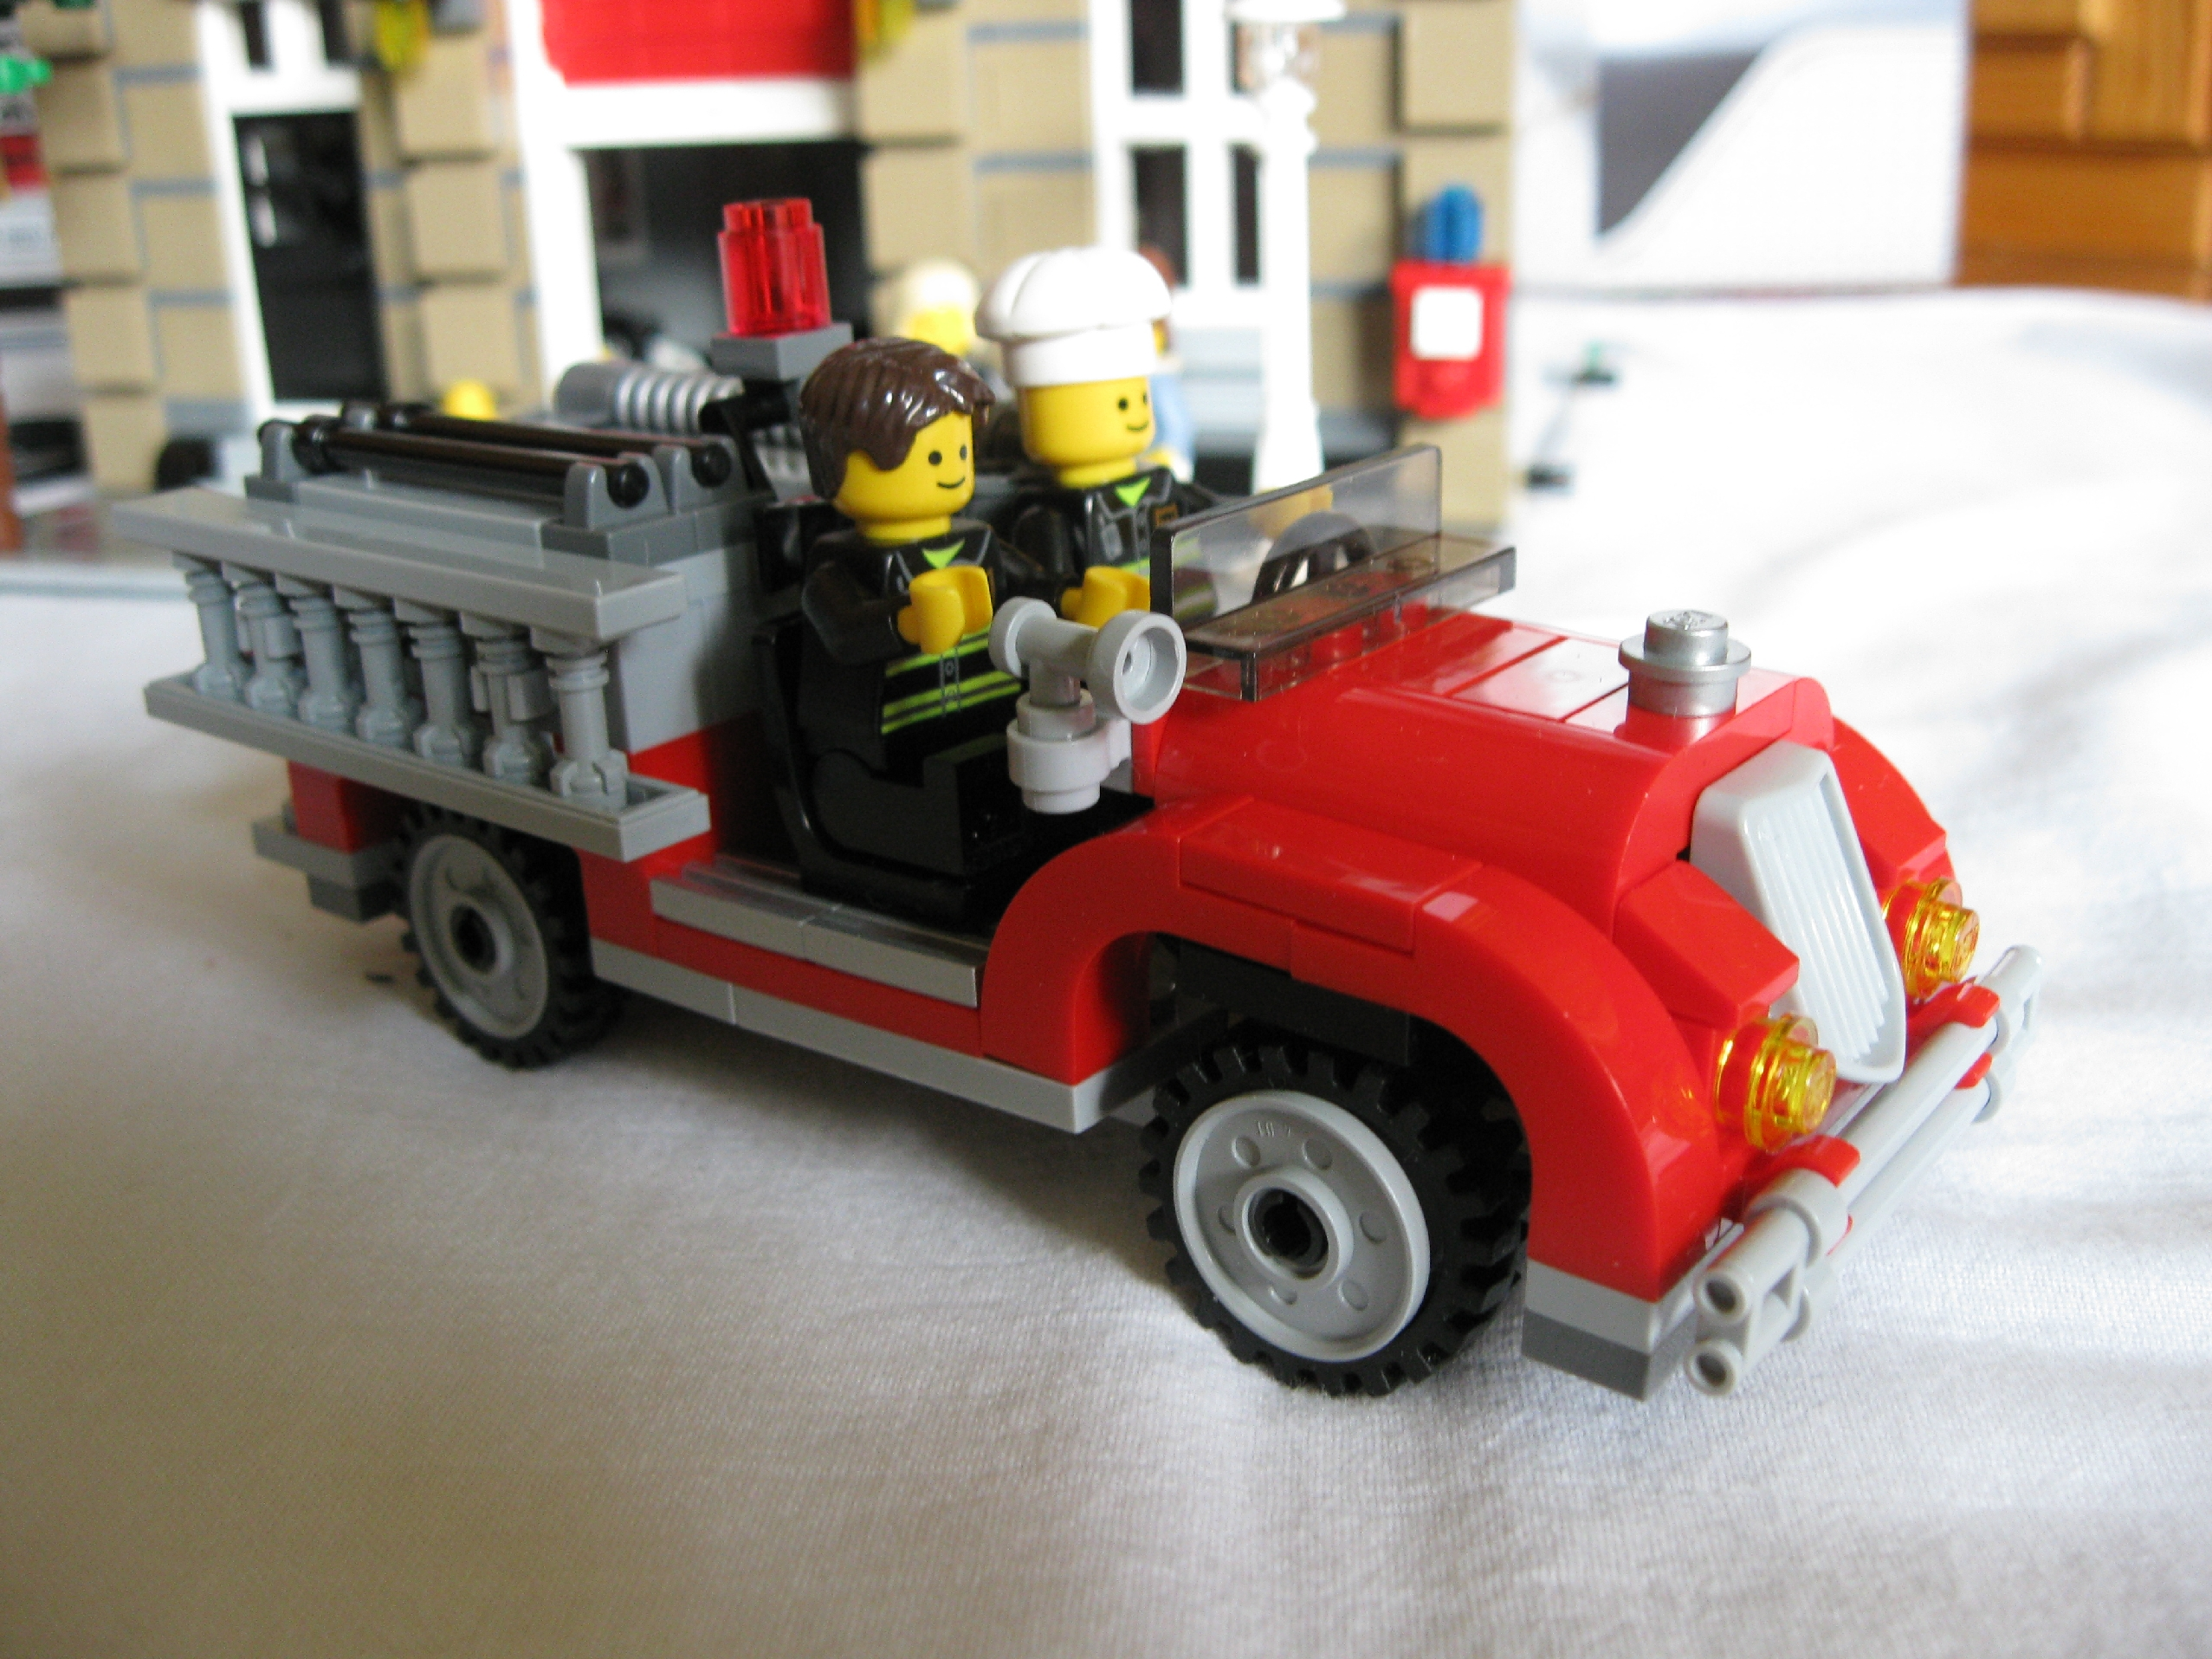 10197fireengineside3.jpg